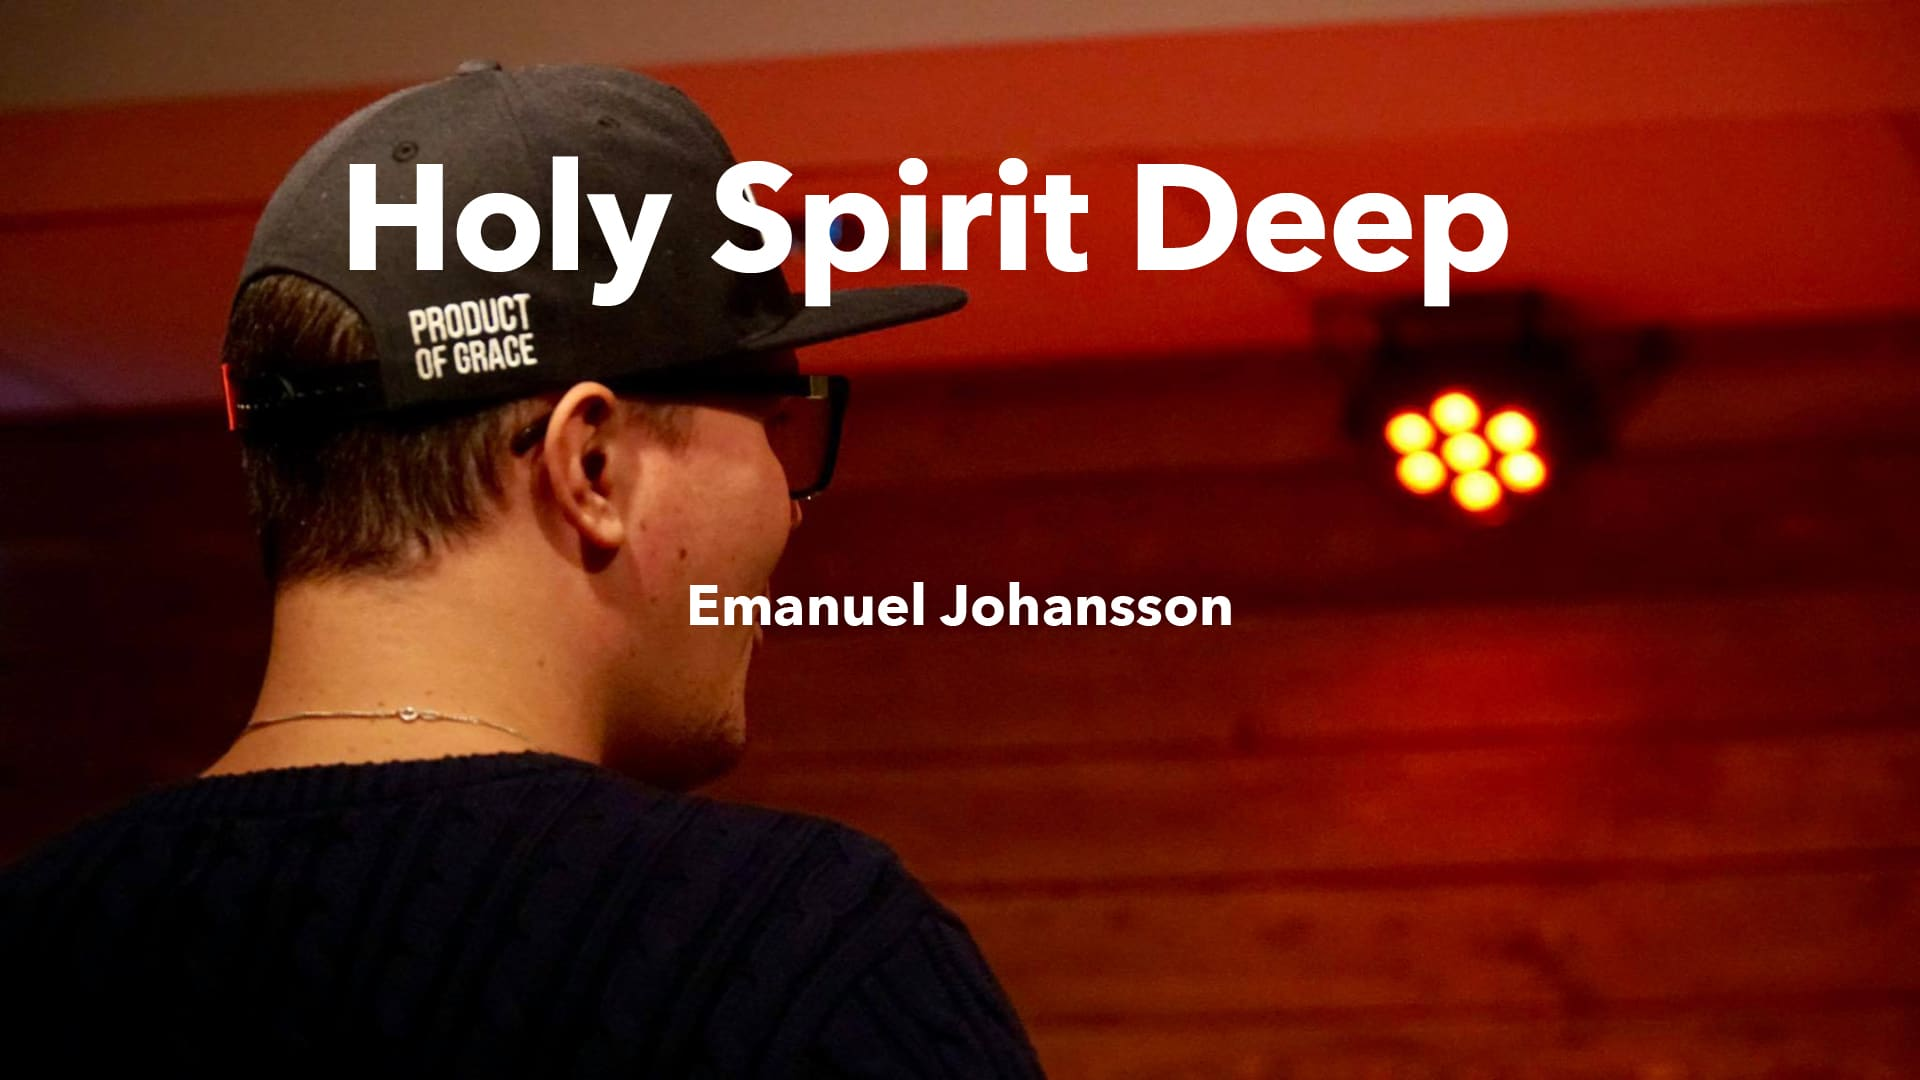 Holy Spirit Deep